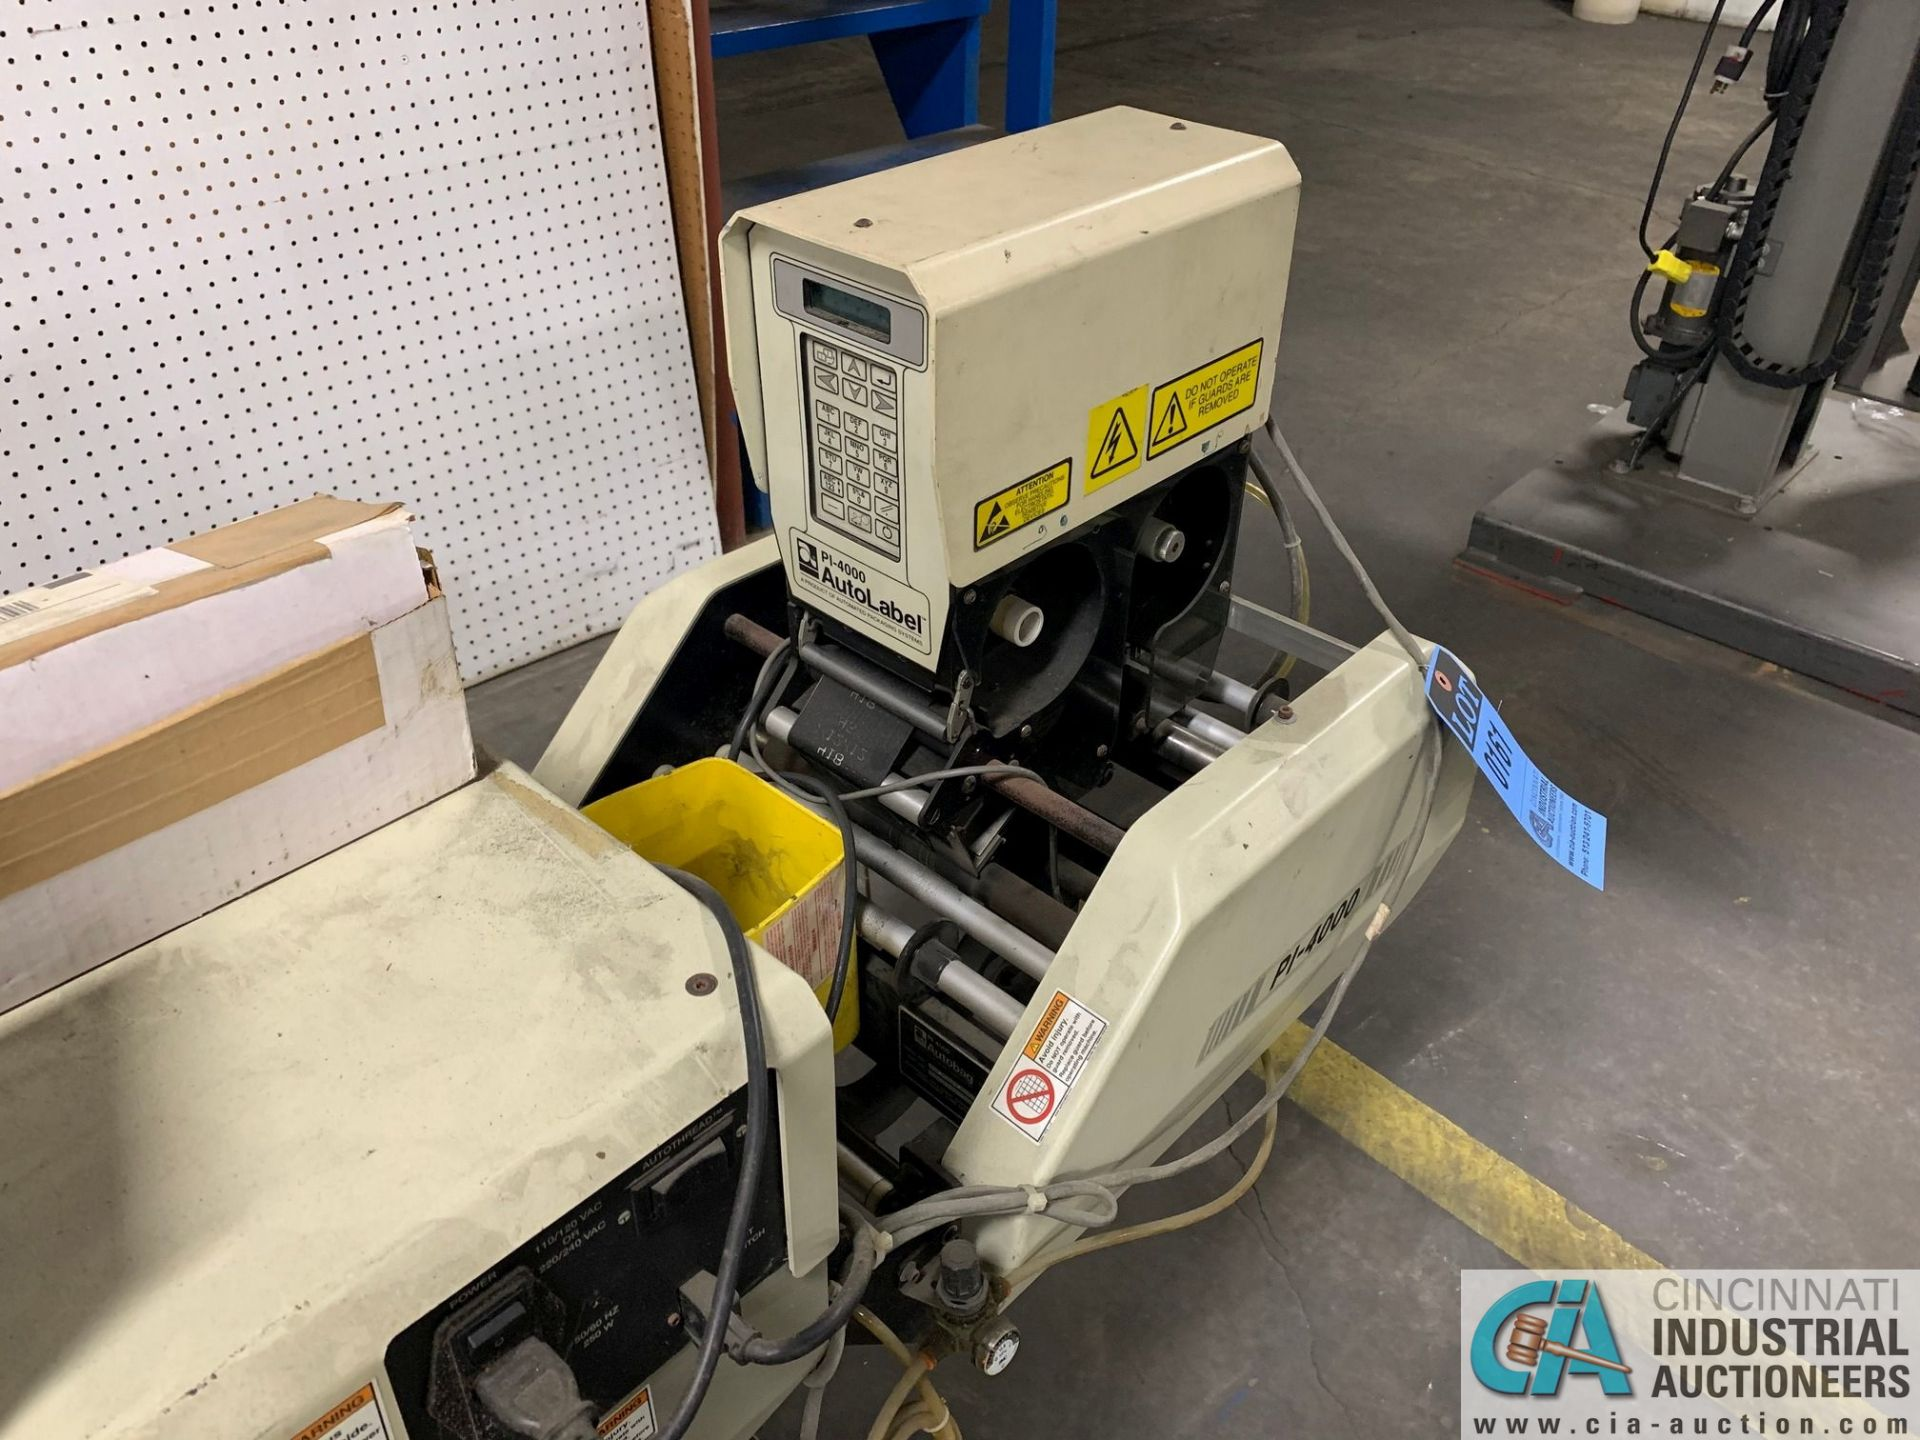 AUTOBAG MODEL HS-100 EXCEL POLY BAGGING MACHINE; S/N 2072896019, WITH P1-4000 AUTO LABEL MACHINE ( - Image 4 of 7